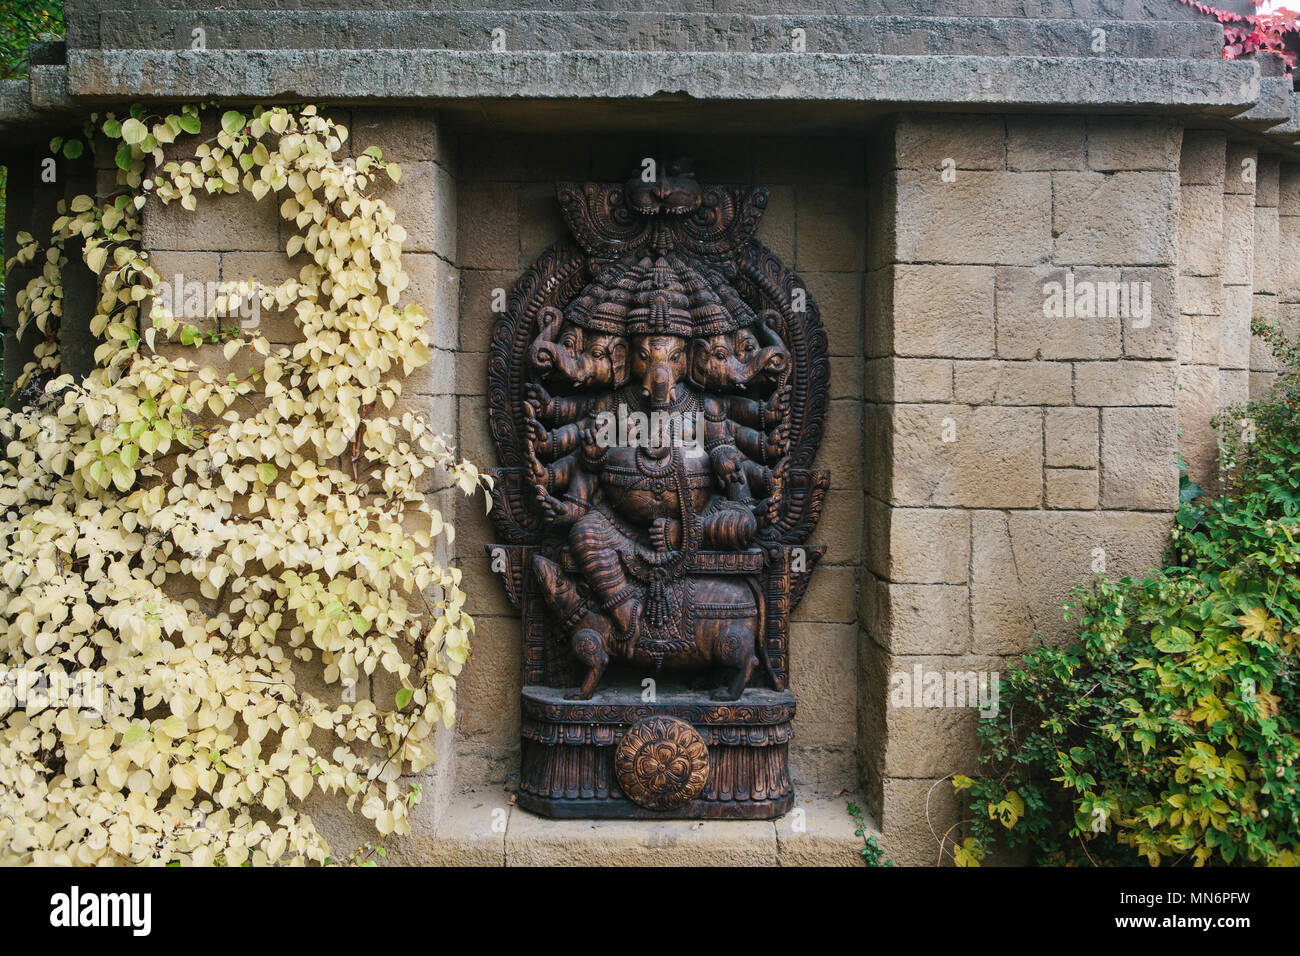 Ganesa or statue of god elephant in Hinduism - Stock Image